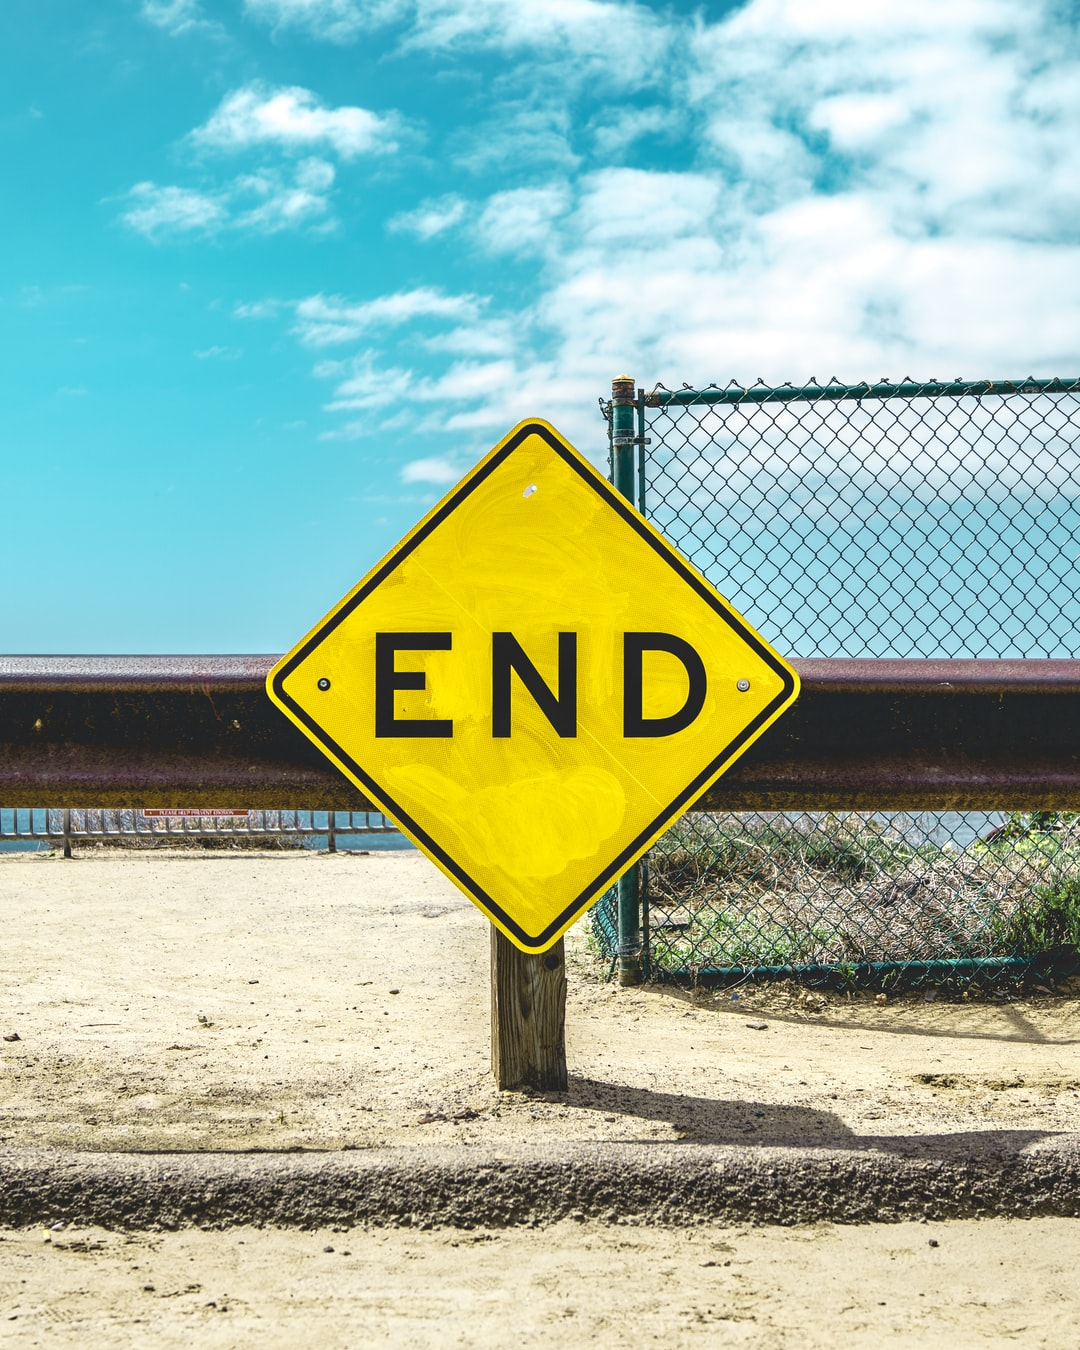 End sign on beige sand